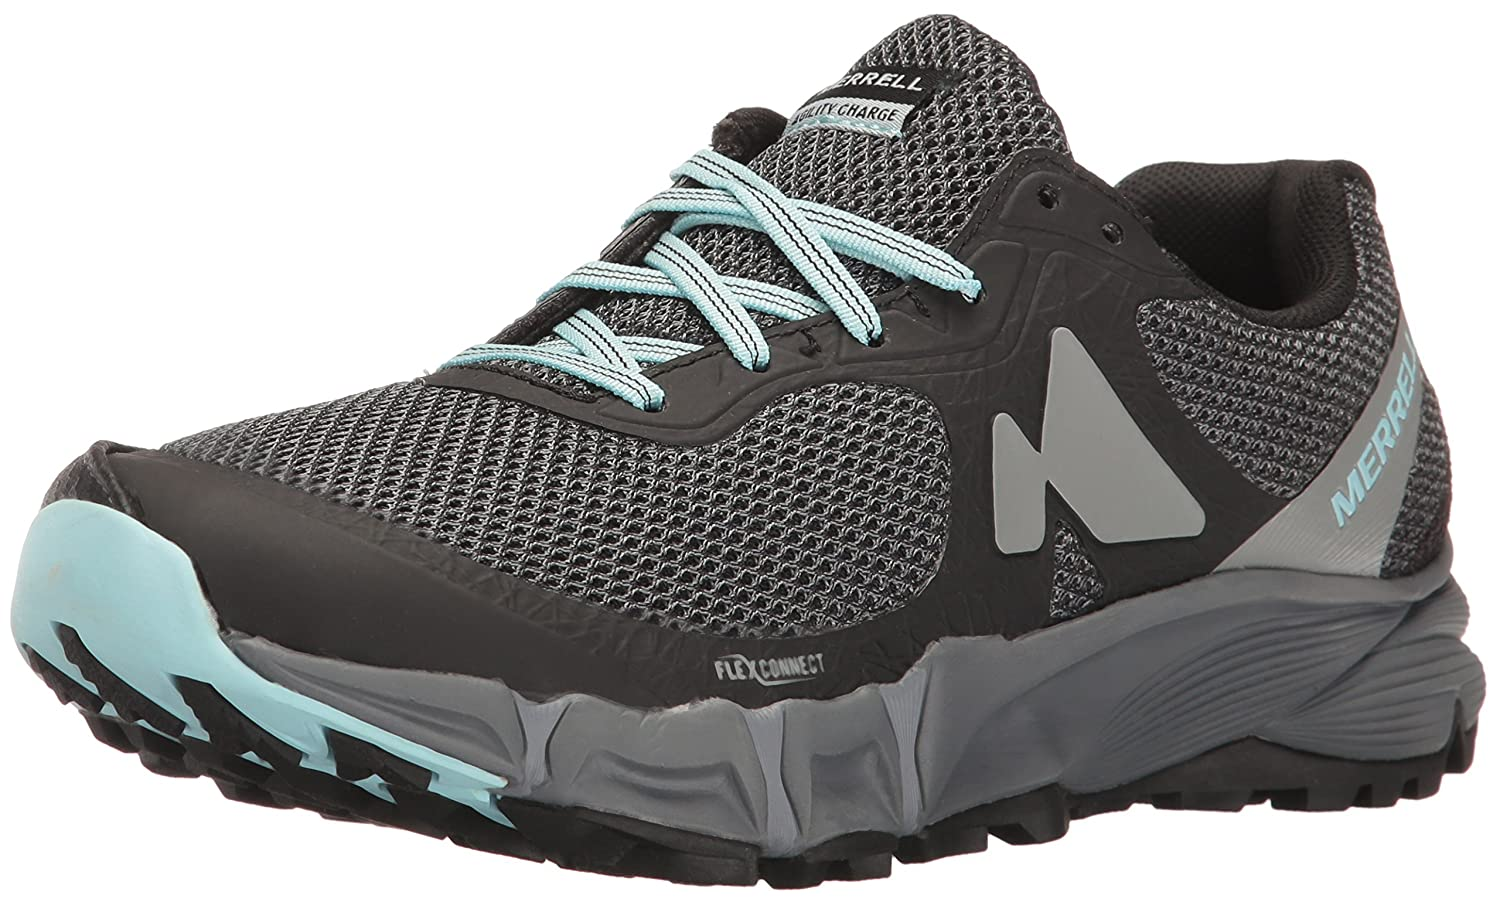 Merrell Women's Agility Charge Flex Trail Runner B01HHA1I56 5.5 B(M) US|Black